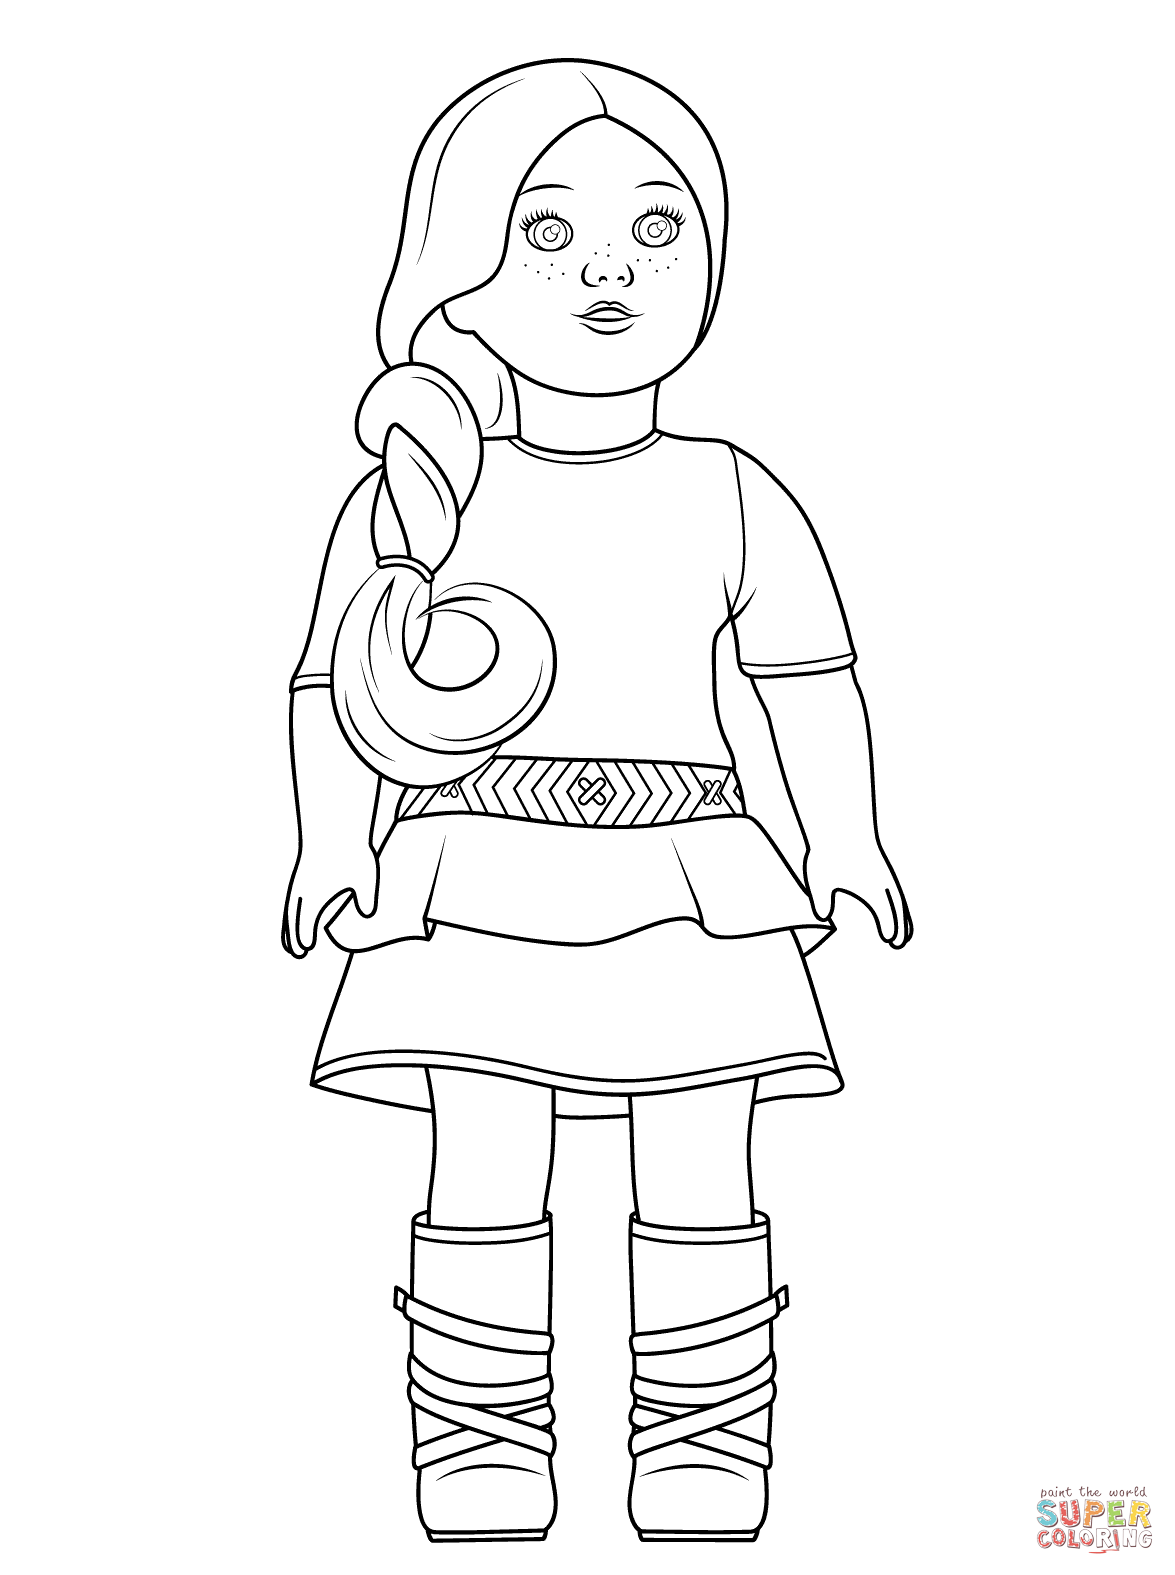 american girl doll coloring pages - Coloring Stuff